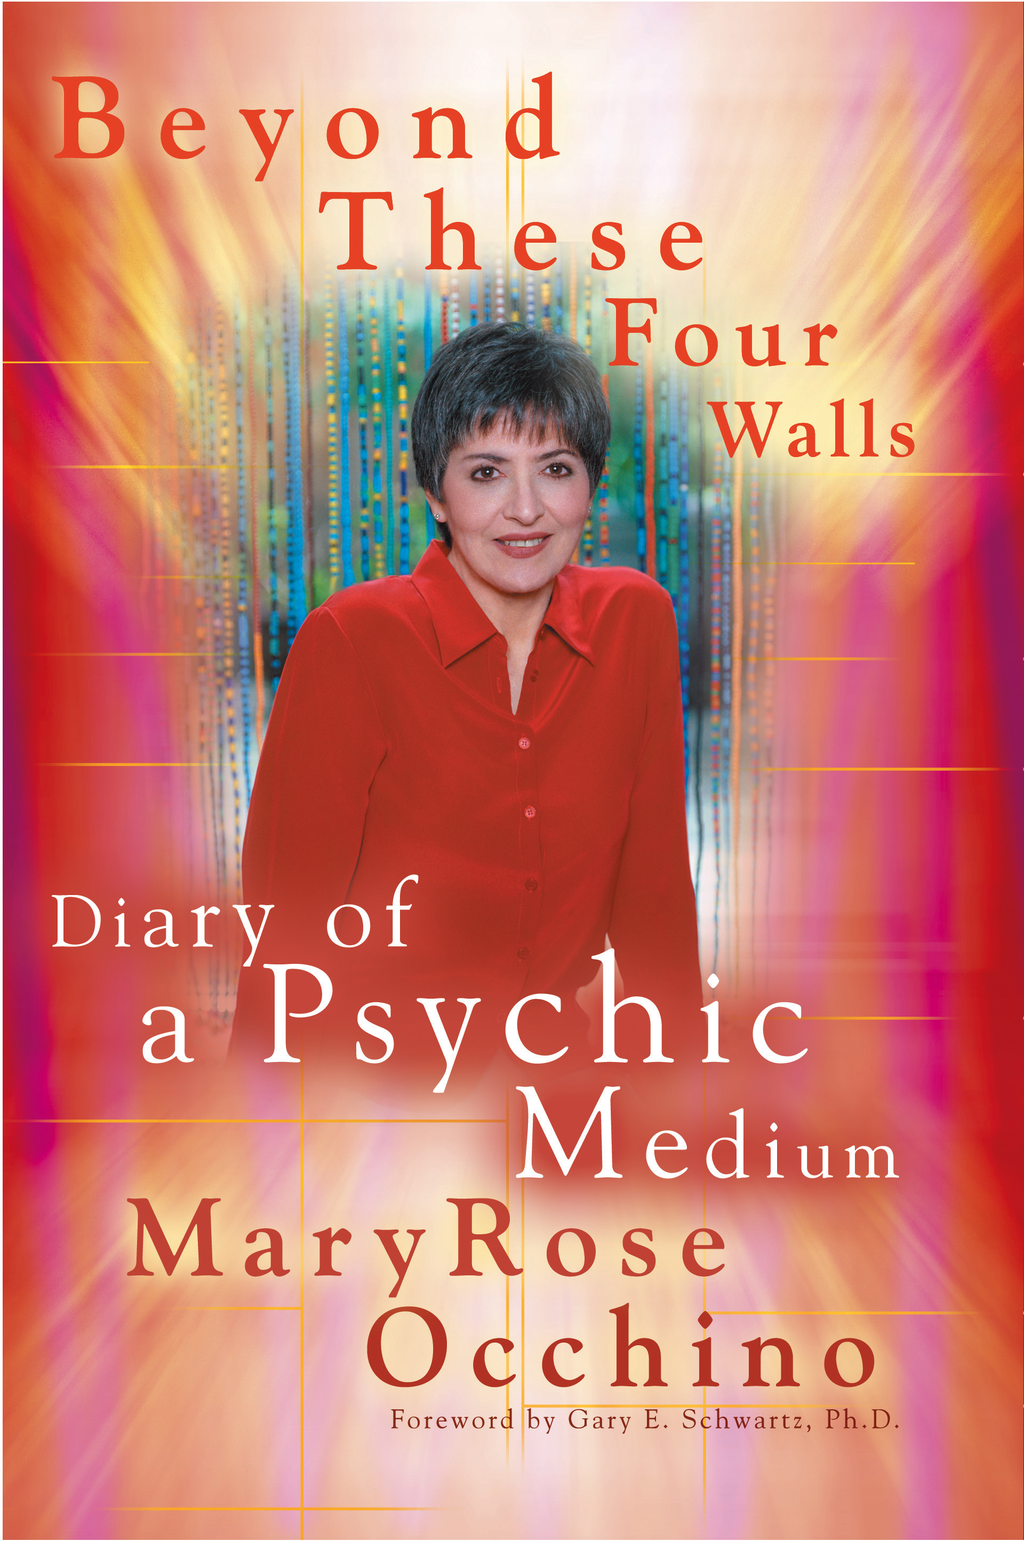 Beyond These Four Walls: Diary of a Psychic Medium